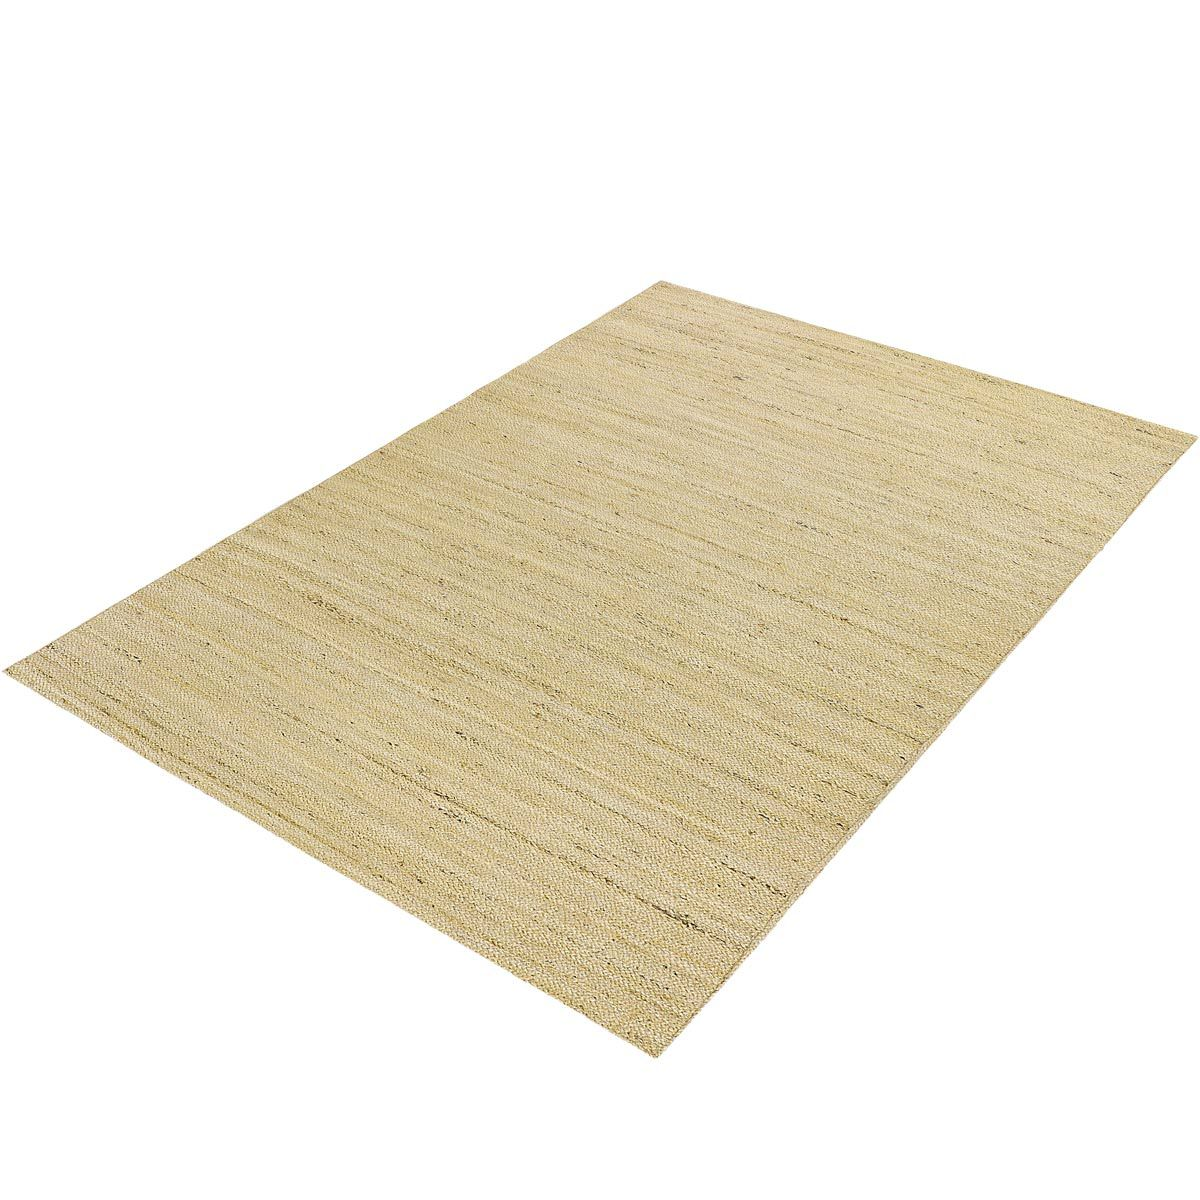 Flat Jute Rug 01 Light Beige 3